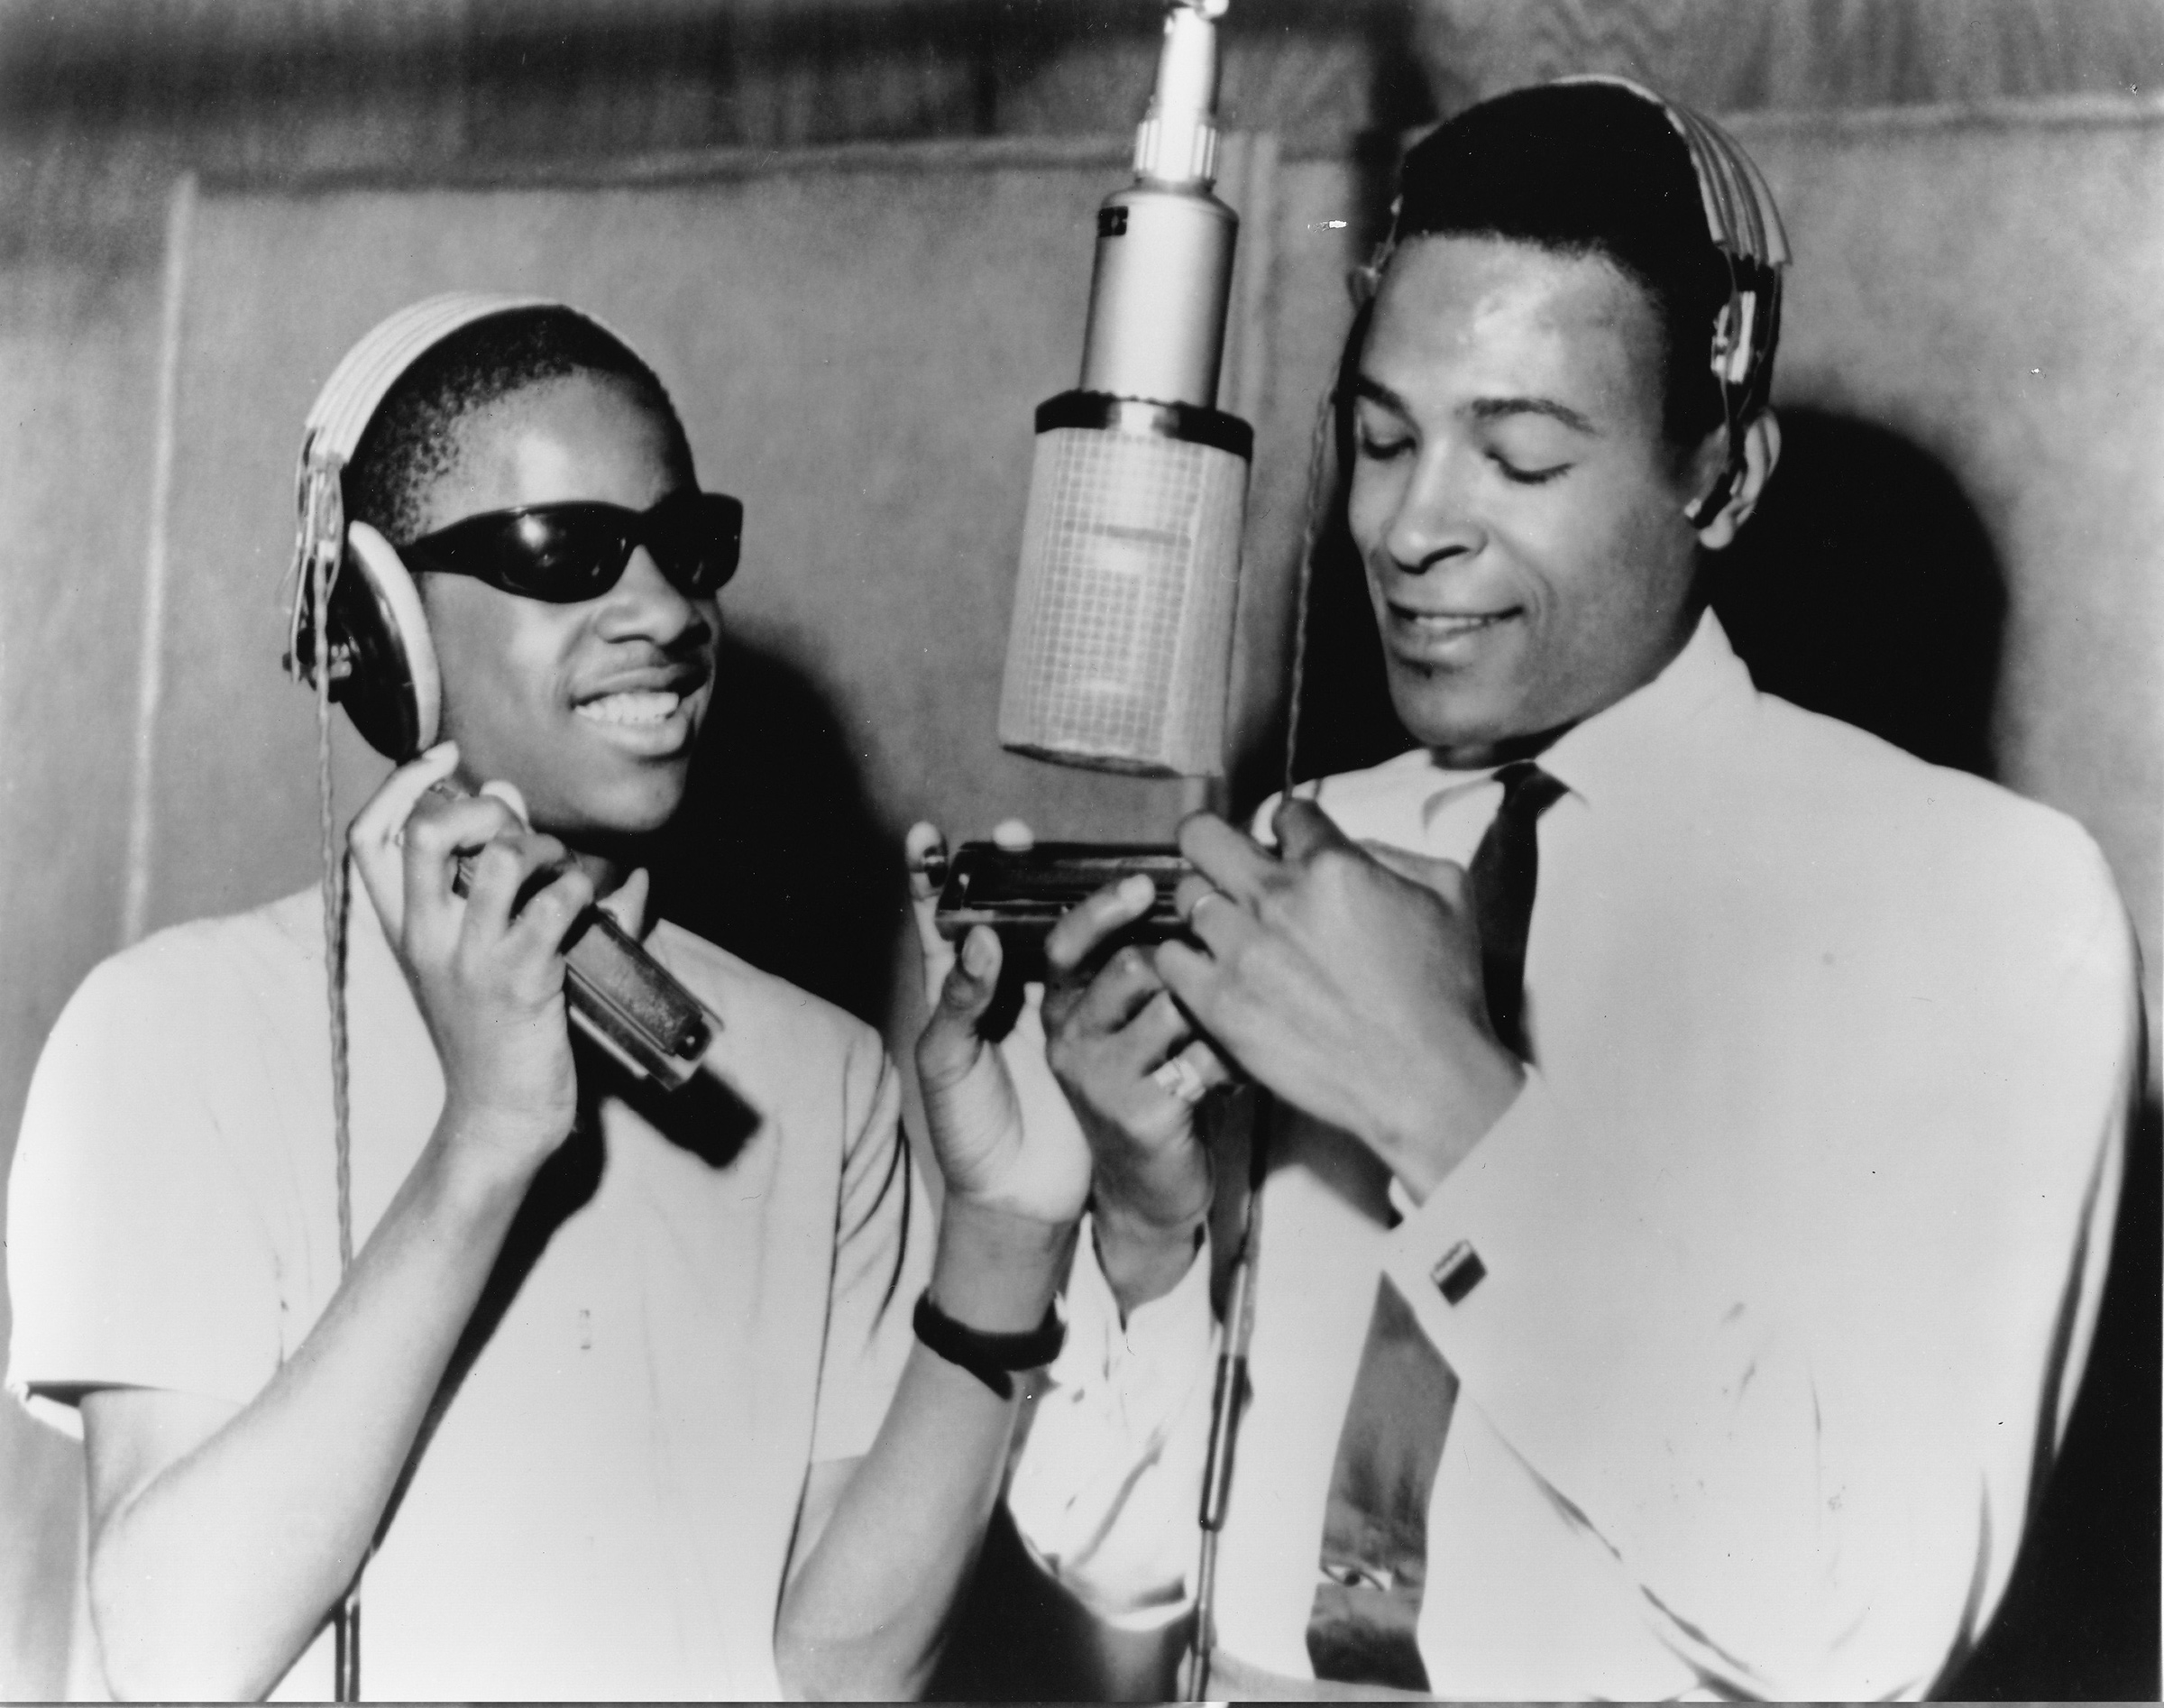 Stevie Wonder, left, with Marvin Gaye in a Motown studio in Detroit in 1965. Founder Berry Gordy came to see the label as a force for integration